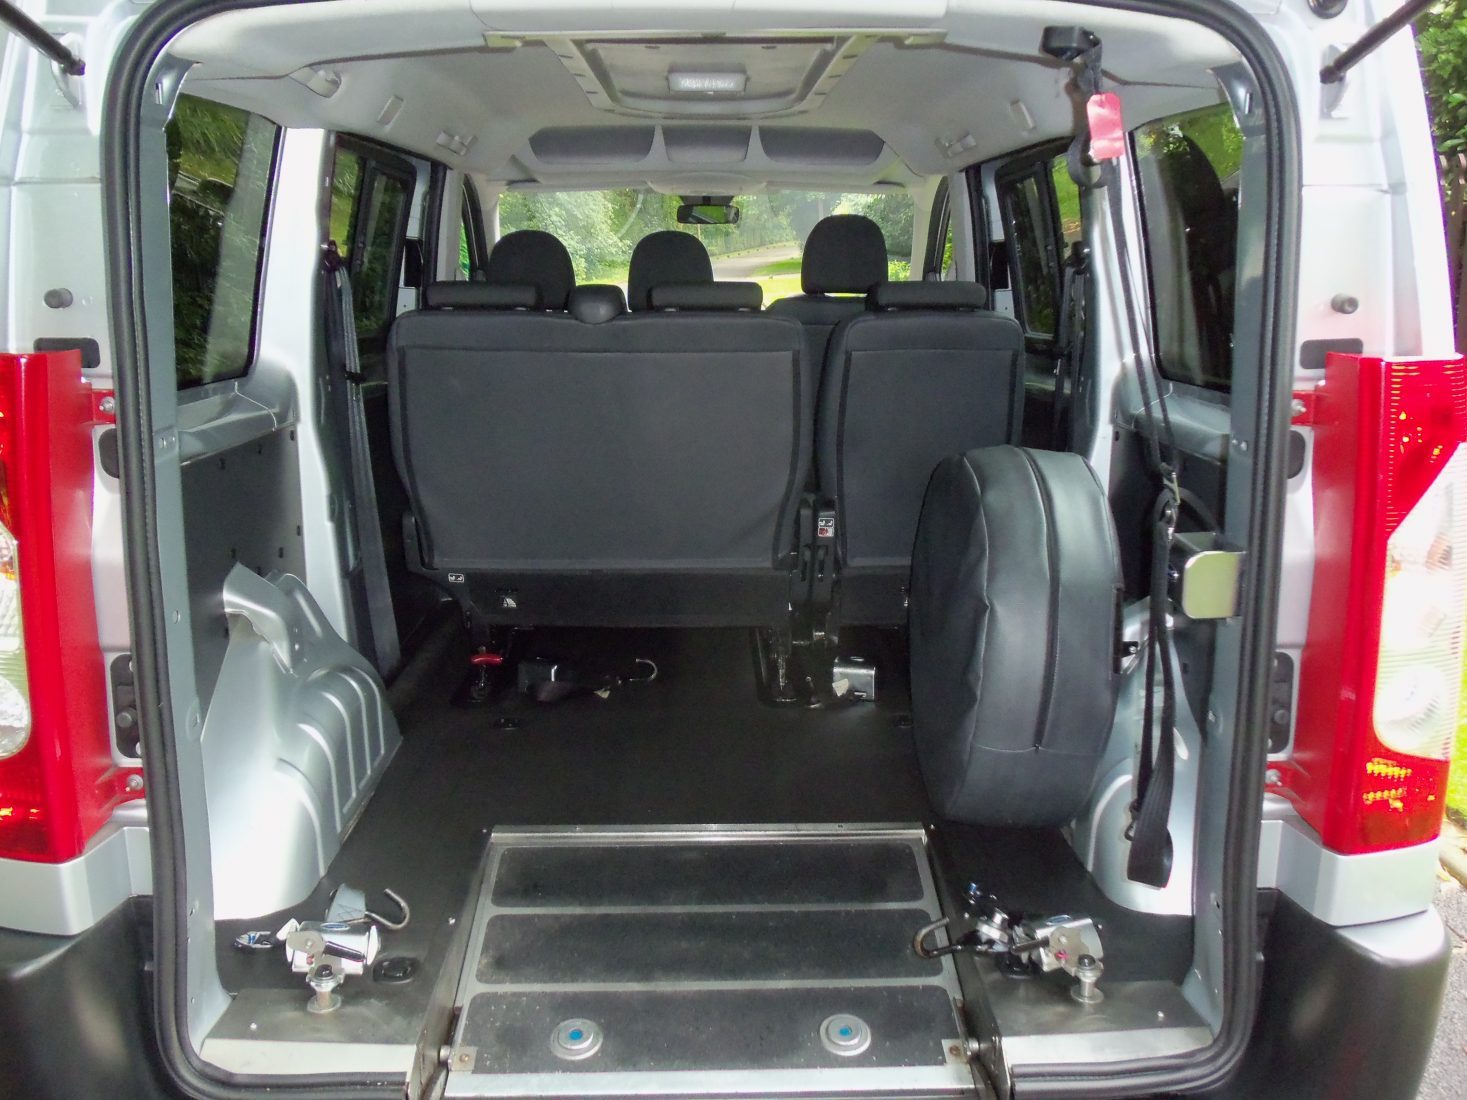 Mobility Scooters For Sale >> wheelchair accessible taxi Eccles Manchester – Wheelchair Cars, - Wheelchair accessible vehicles